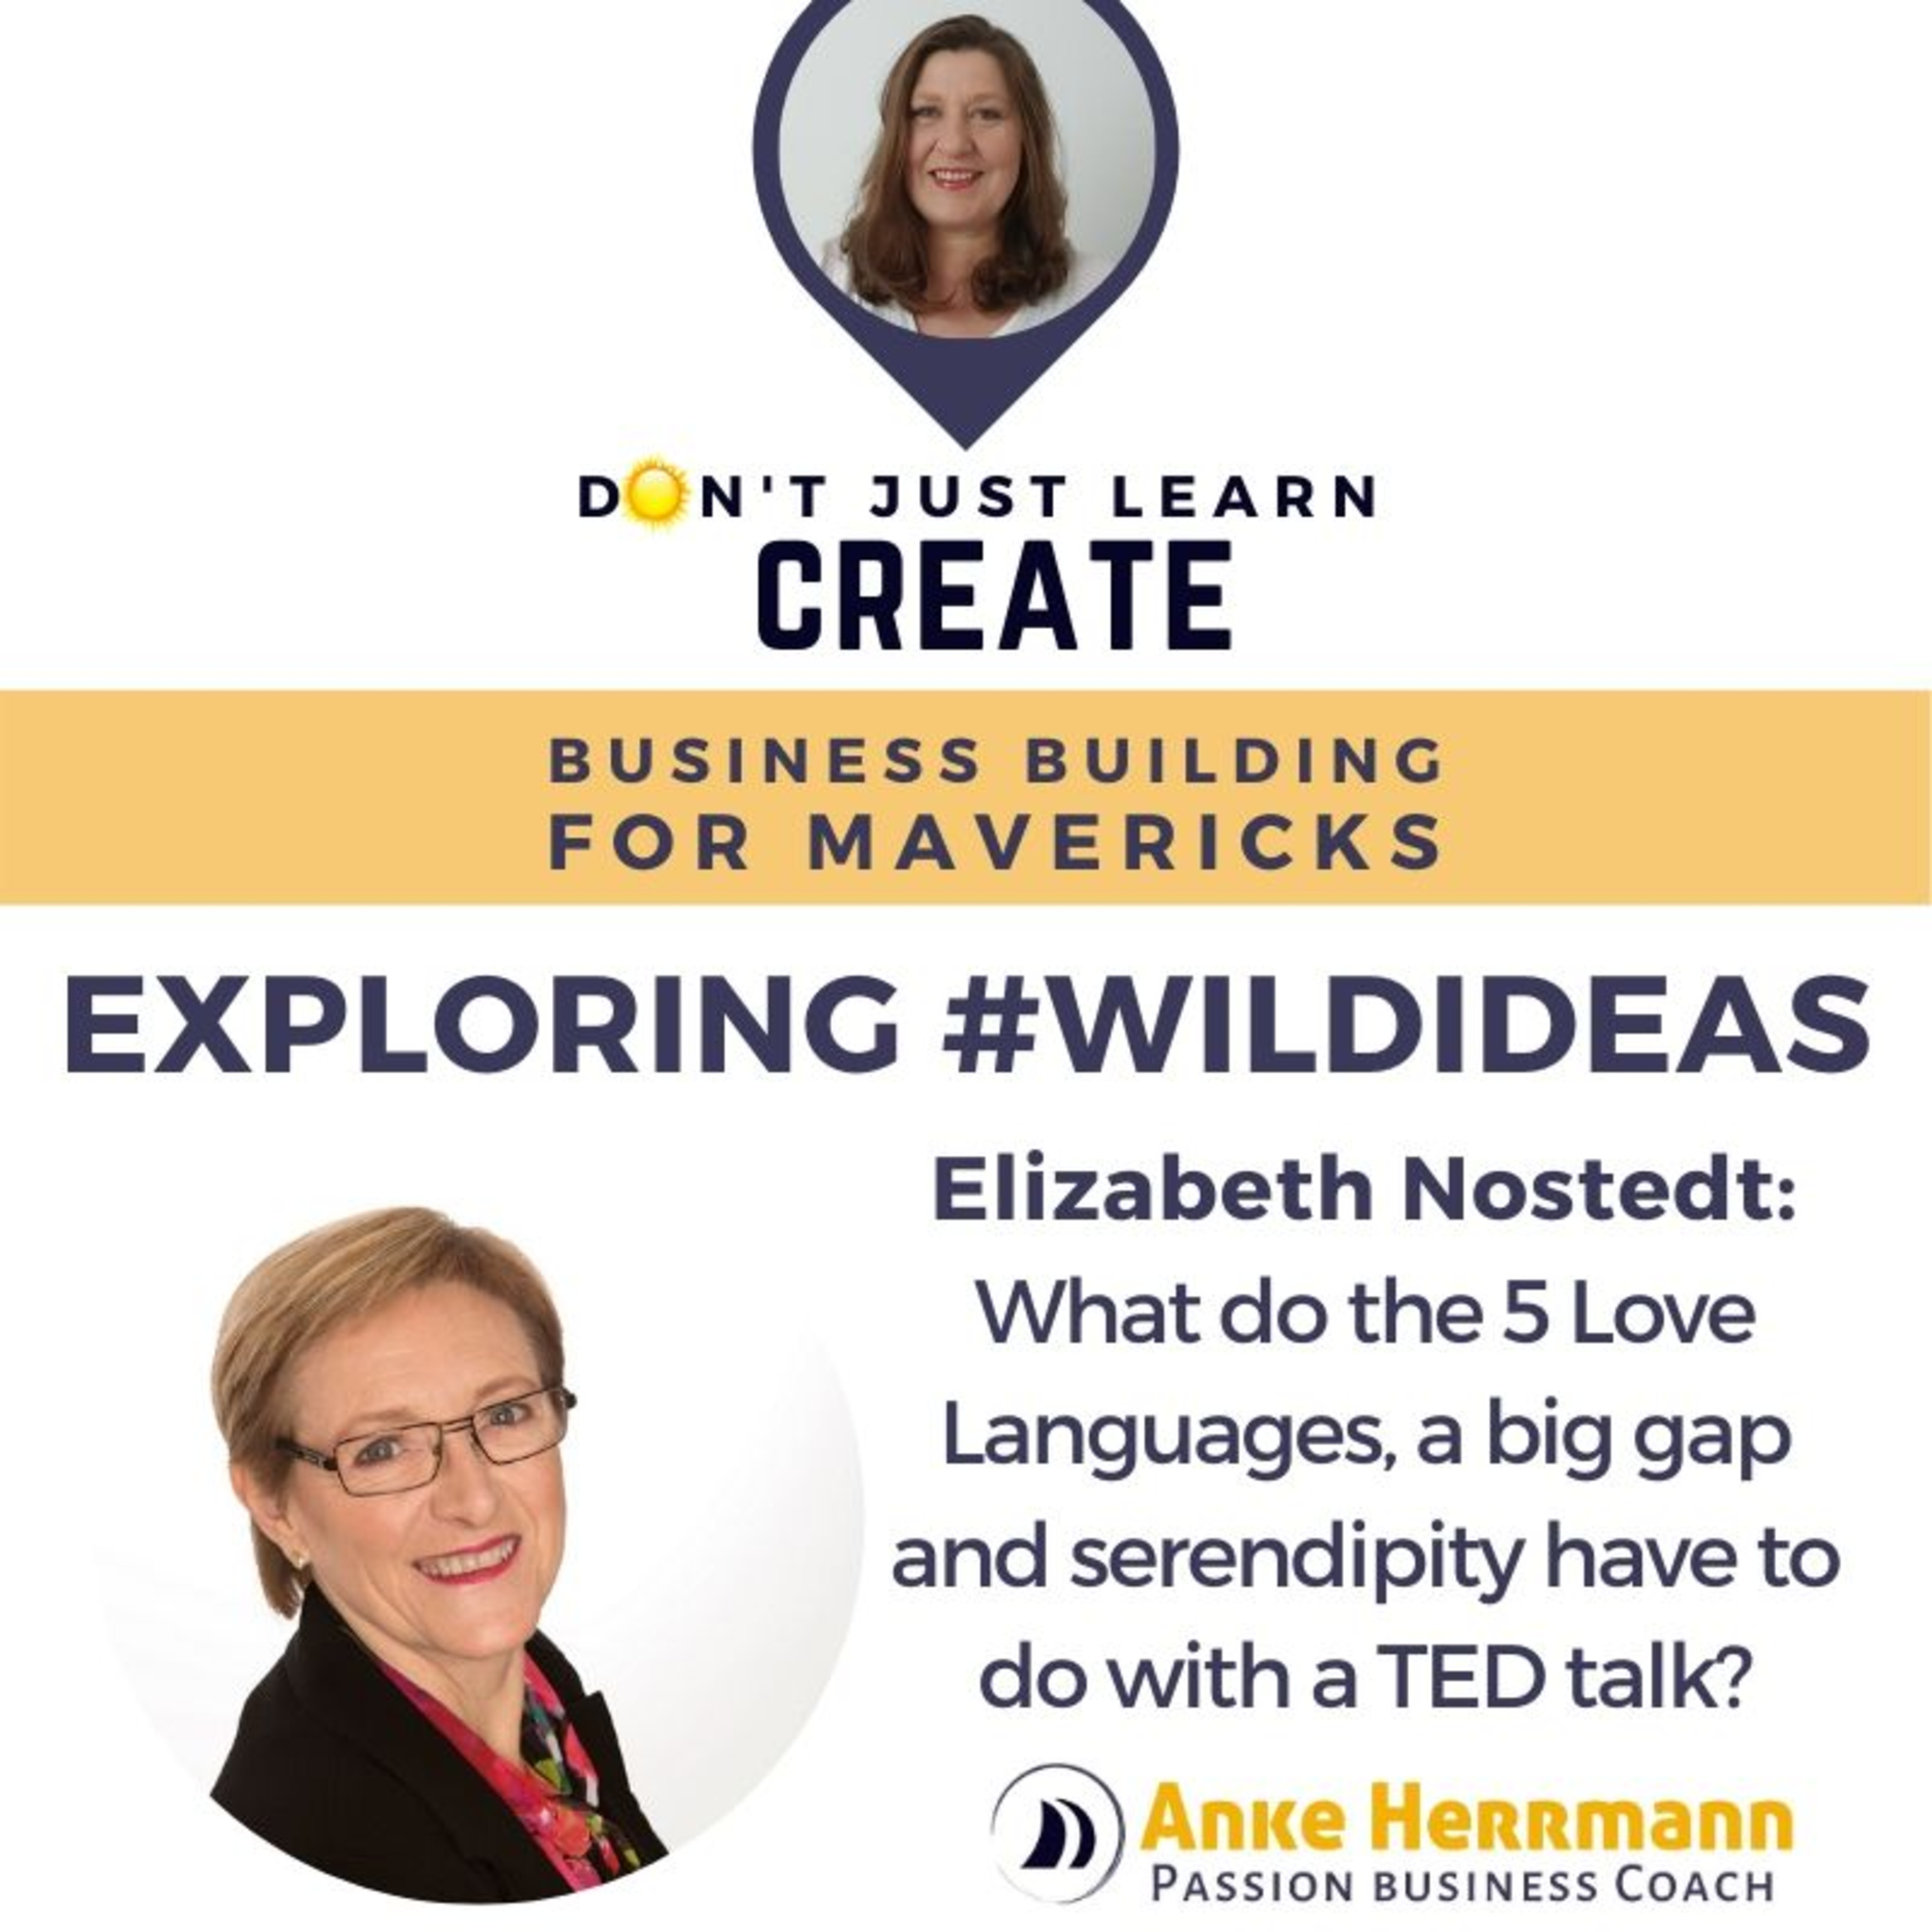 Exploring #WildIdeas with Elizabeth Nostedt: What do the 5 Love Languages, a big gap and serendipity have to do with a TED talk?